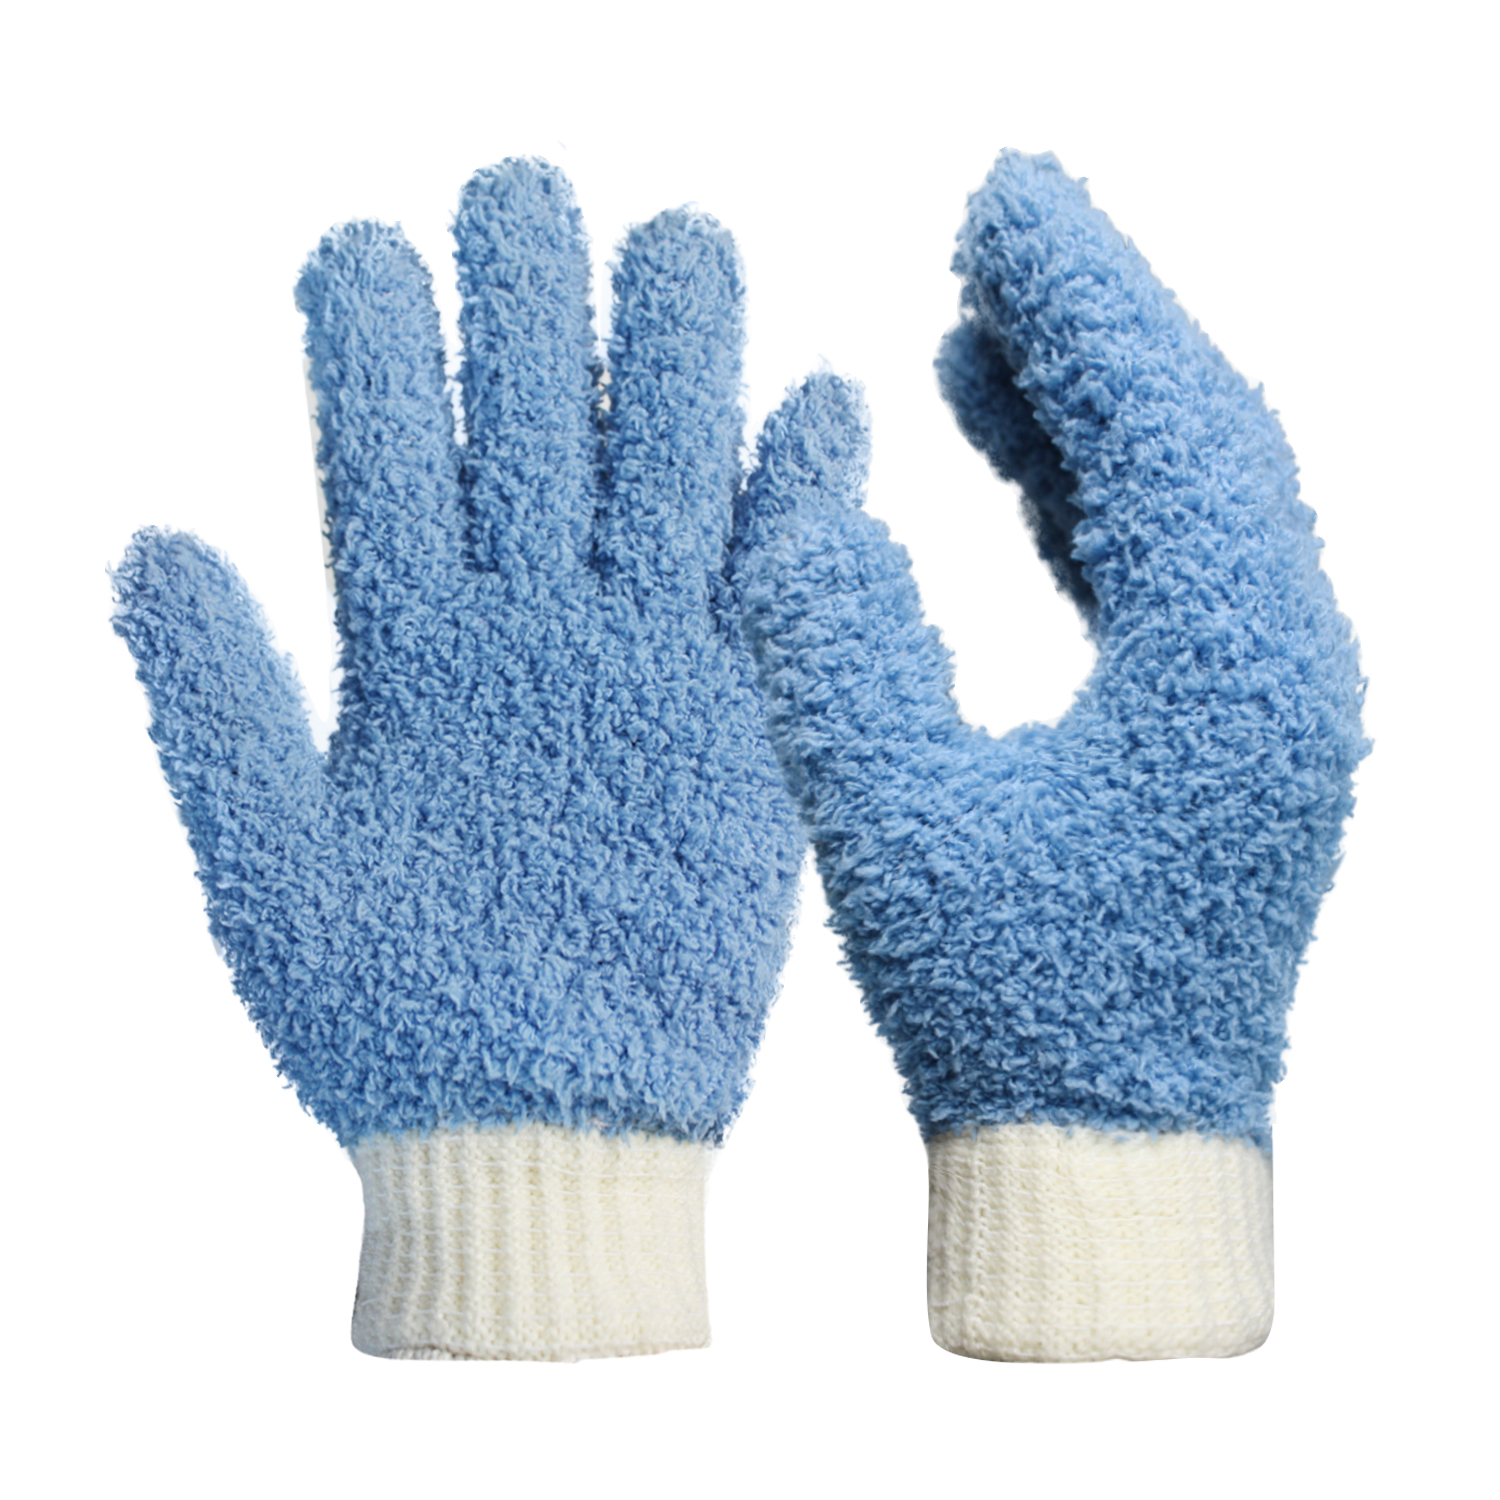 Microfiber Dusting Cleaning Gloves/MDC-001-B